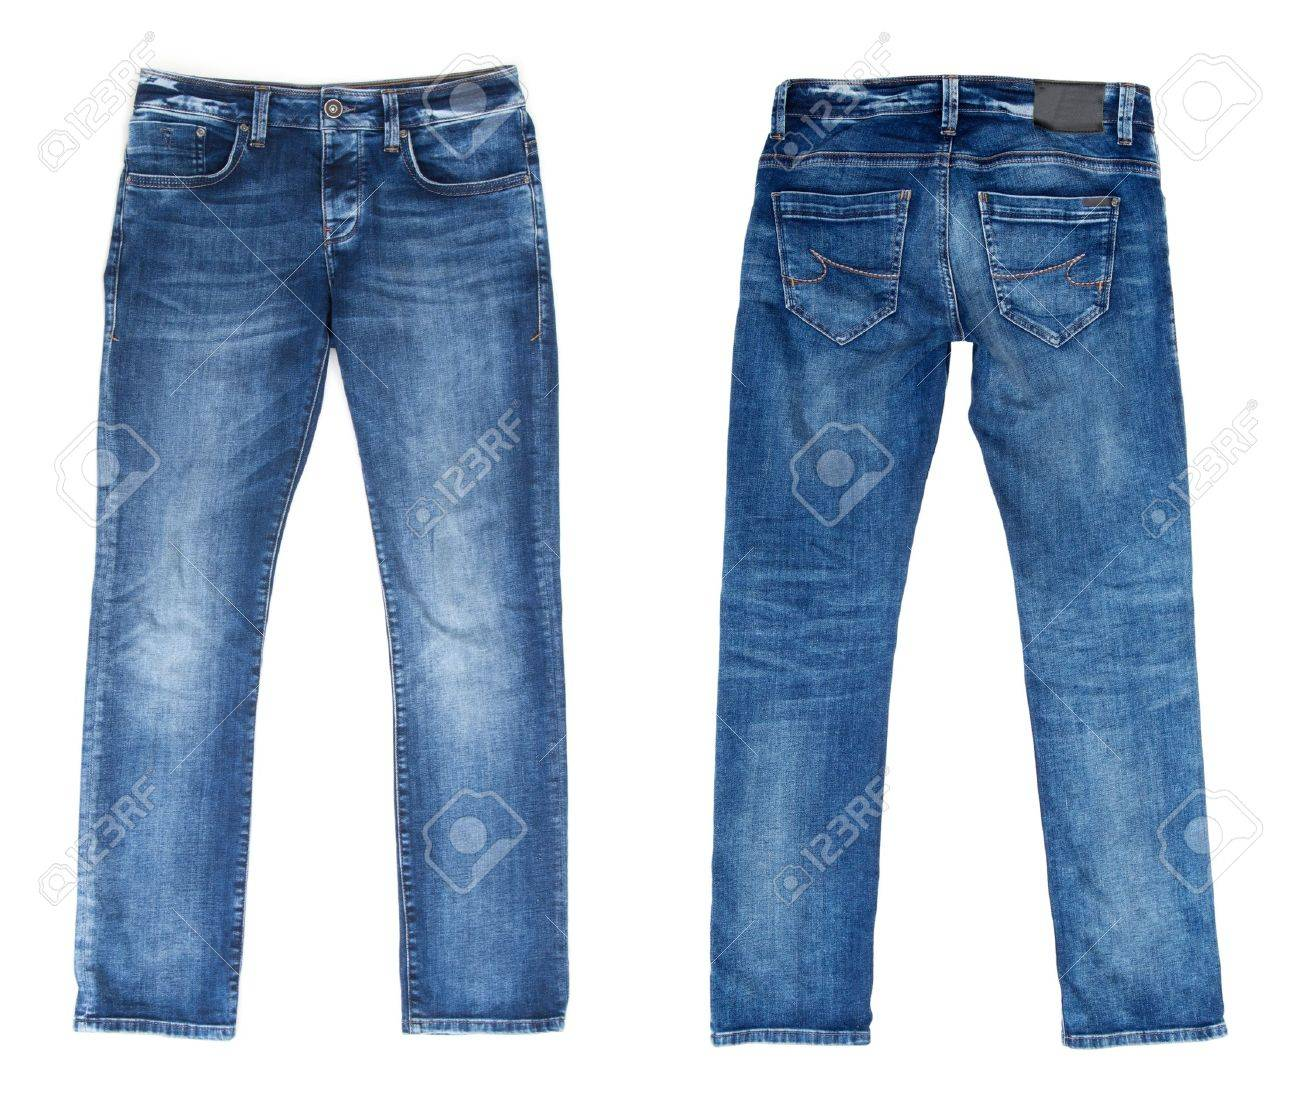 Blue Jeans Isolated on White - 15806723